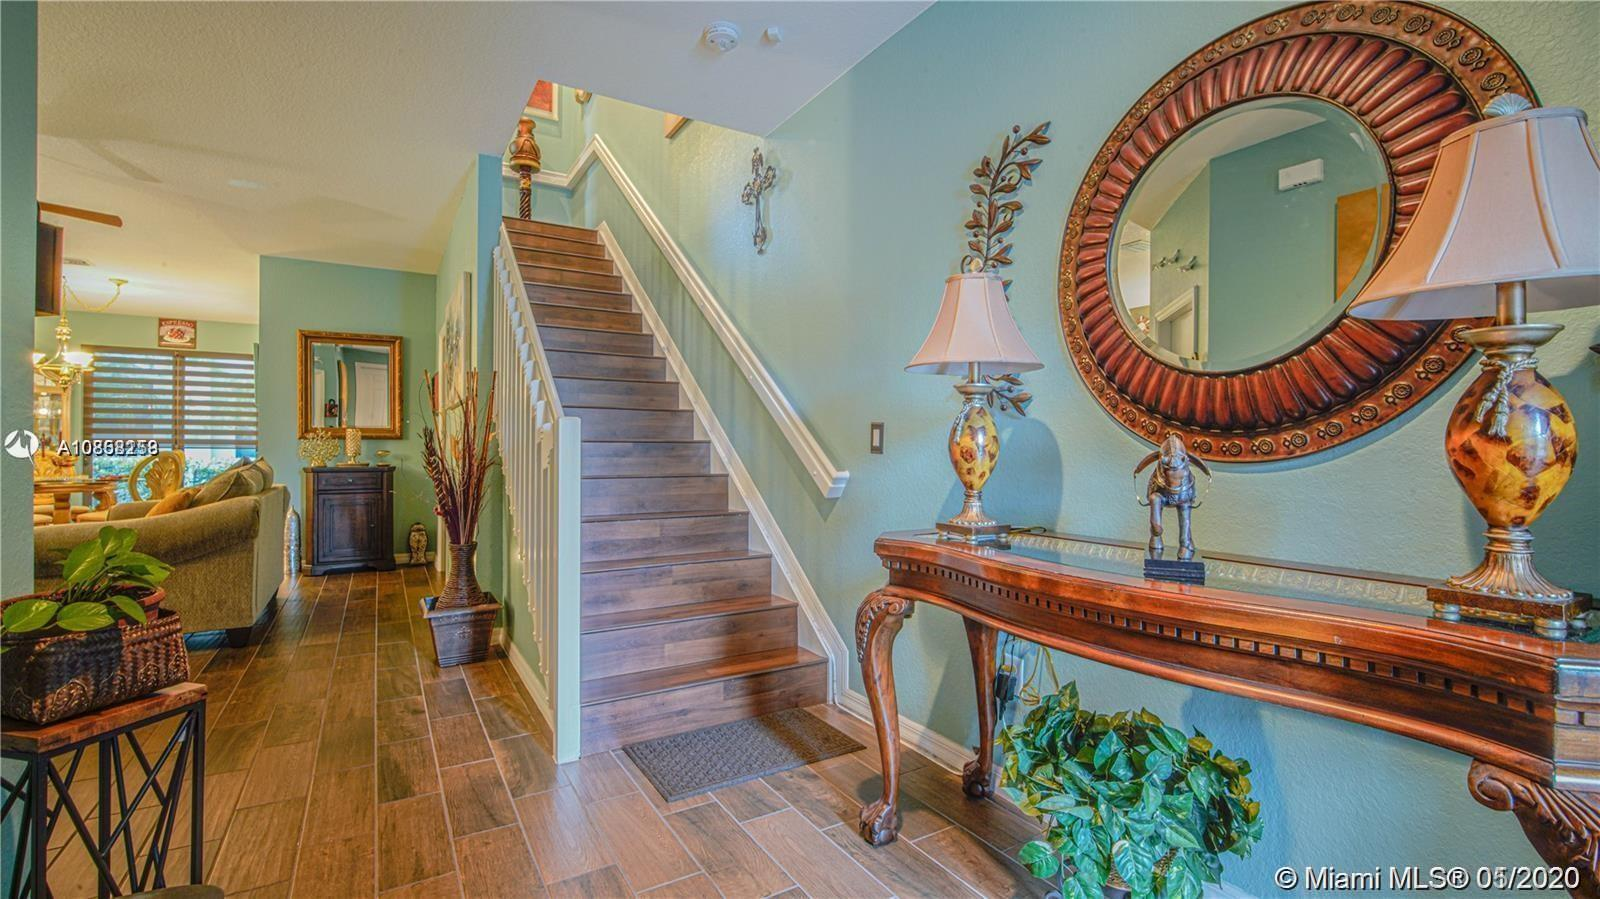 Beautiful Mediterranean style New Constrution Townhomes at Madison Place offers 3 bedroom, 2.5 bathr